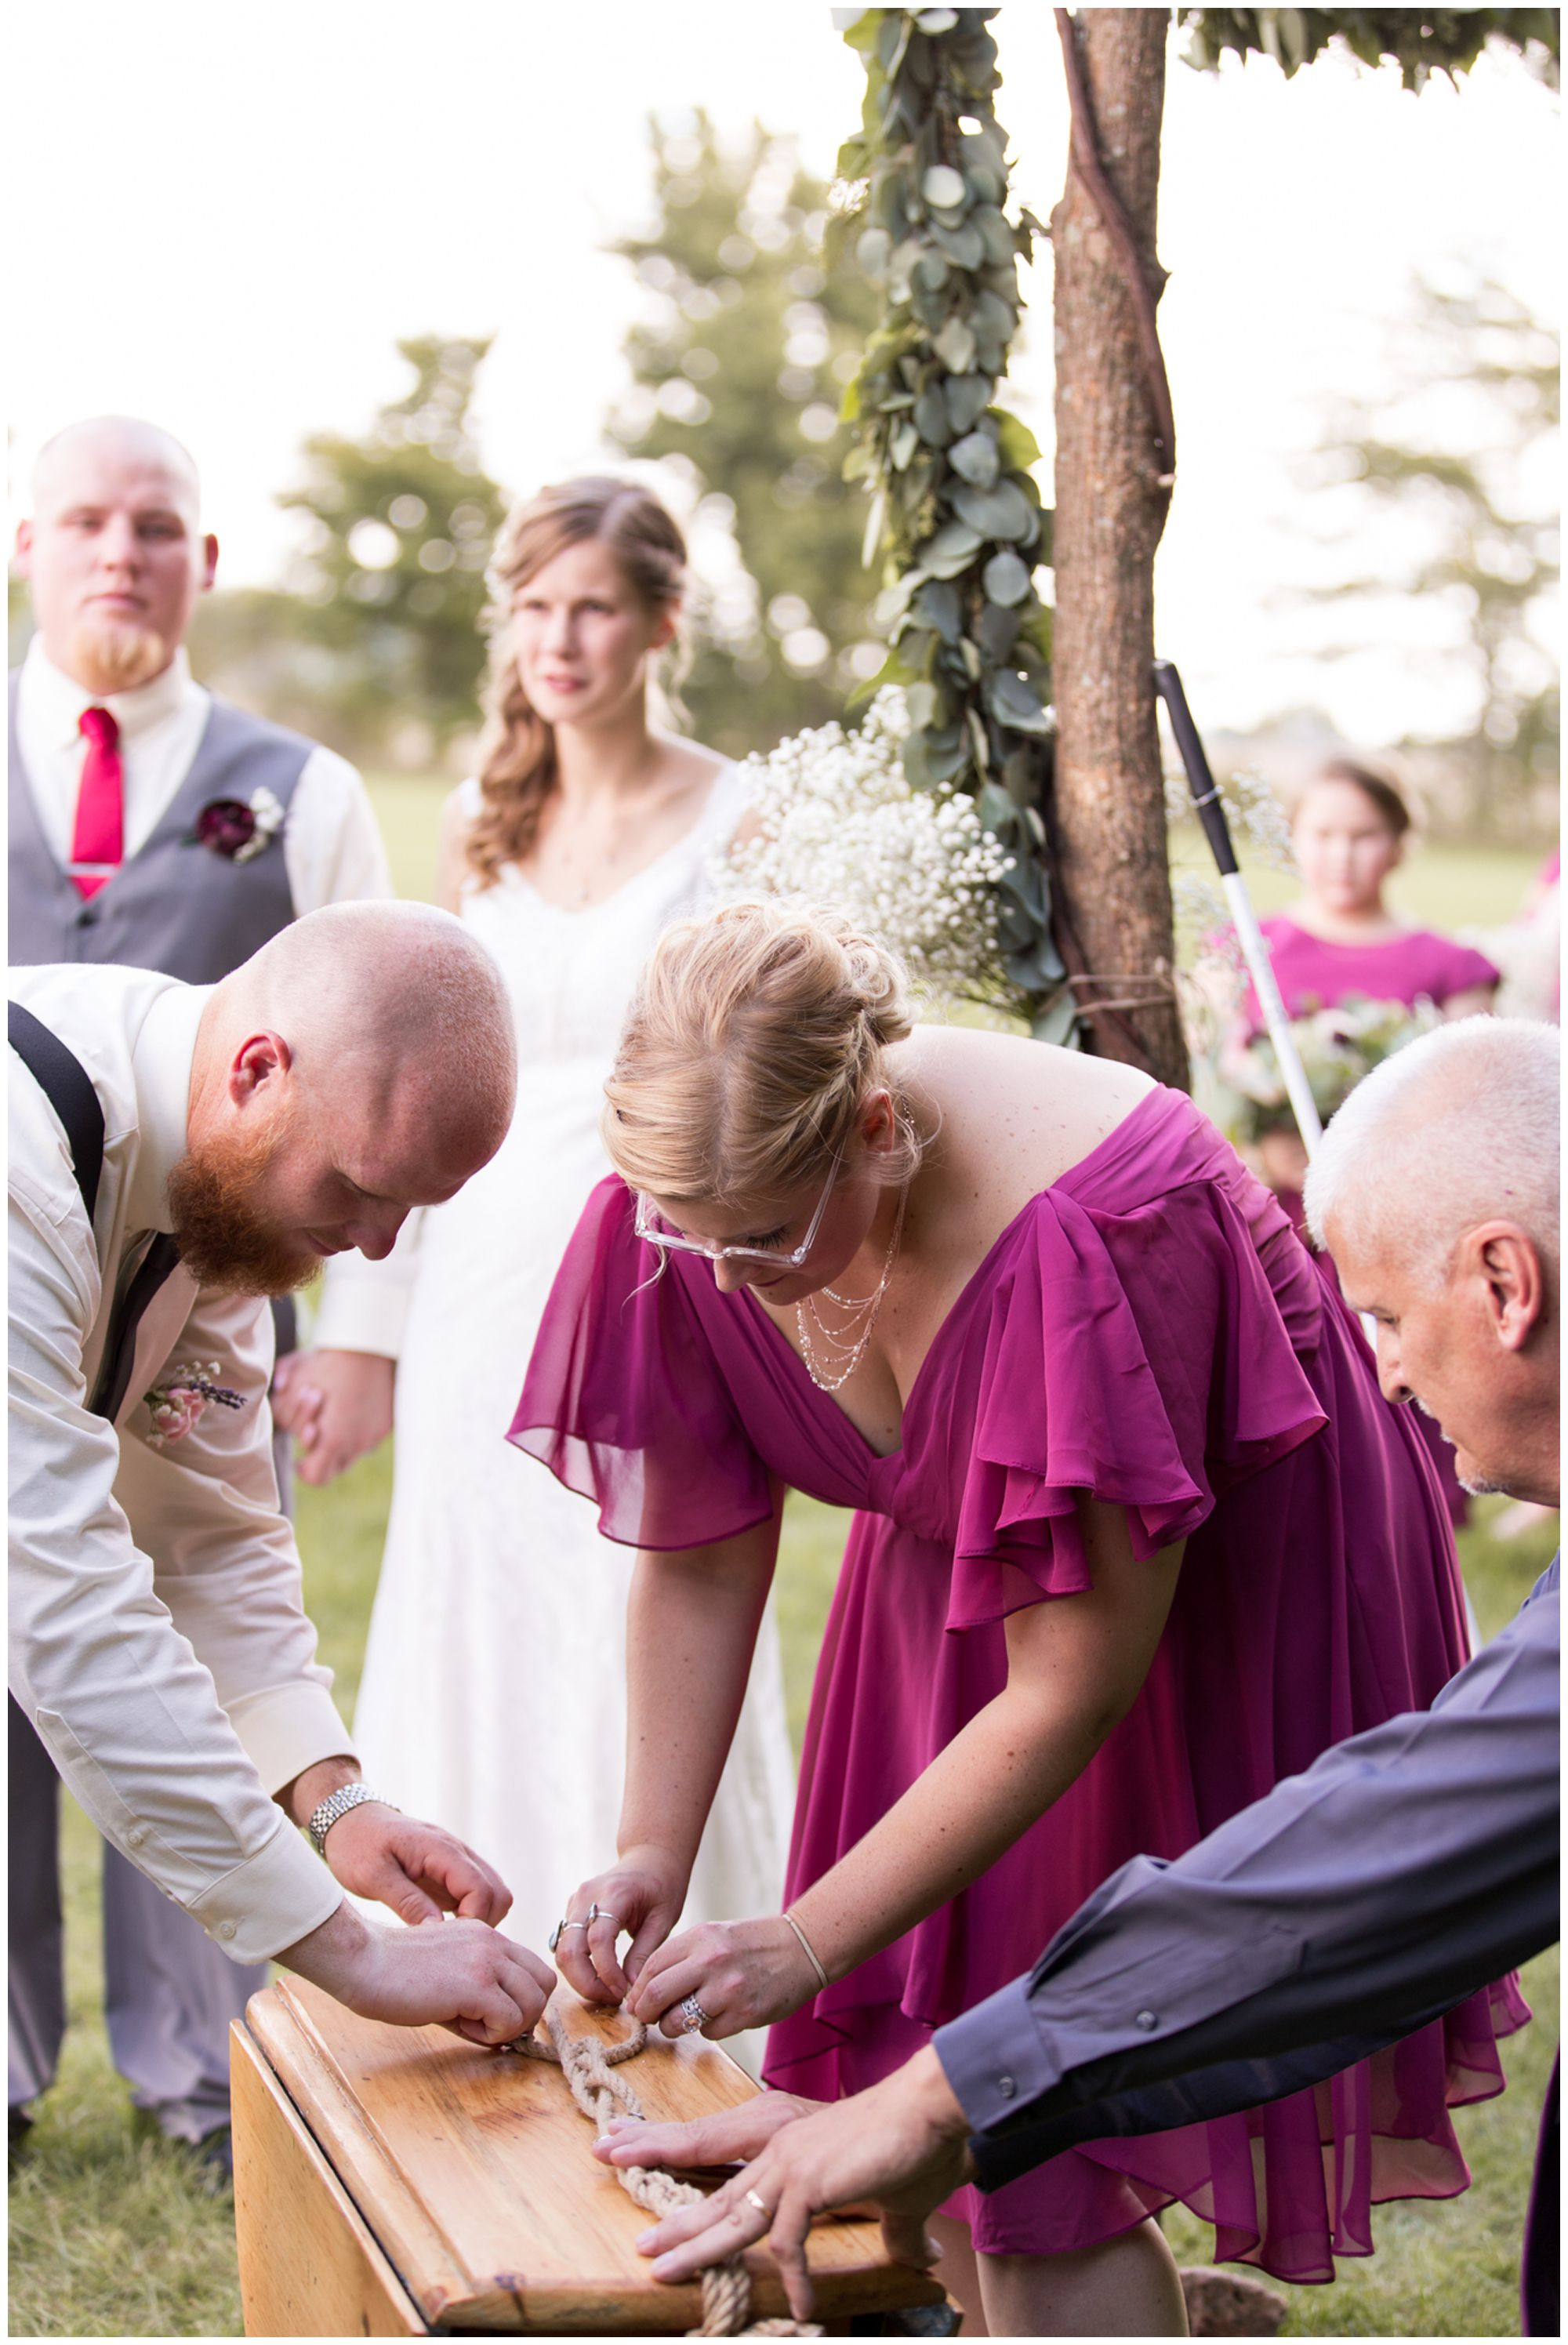 bride's sister Becca and groom's brother Ben add charm and finish knotting the cord during wedding ceremony at Crossroads Community Church